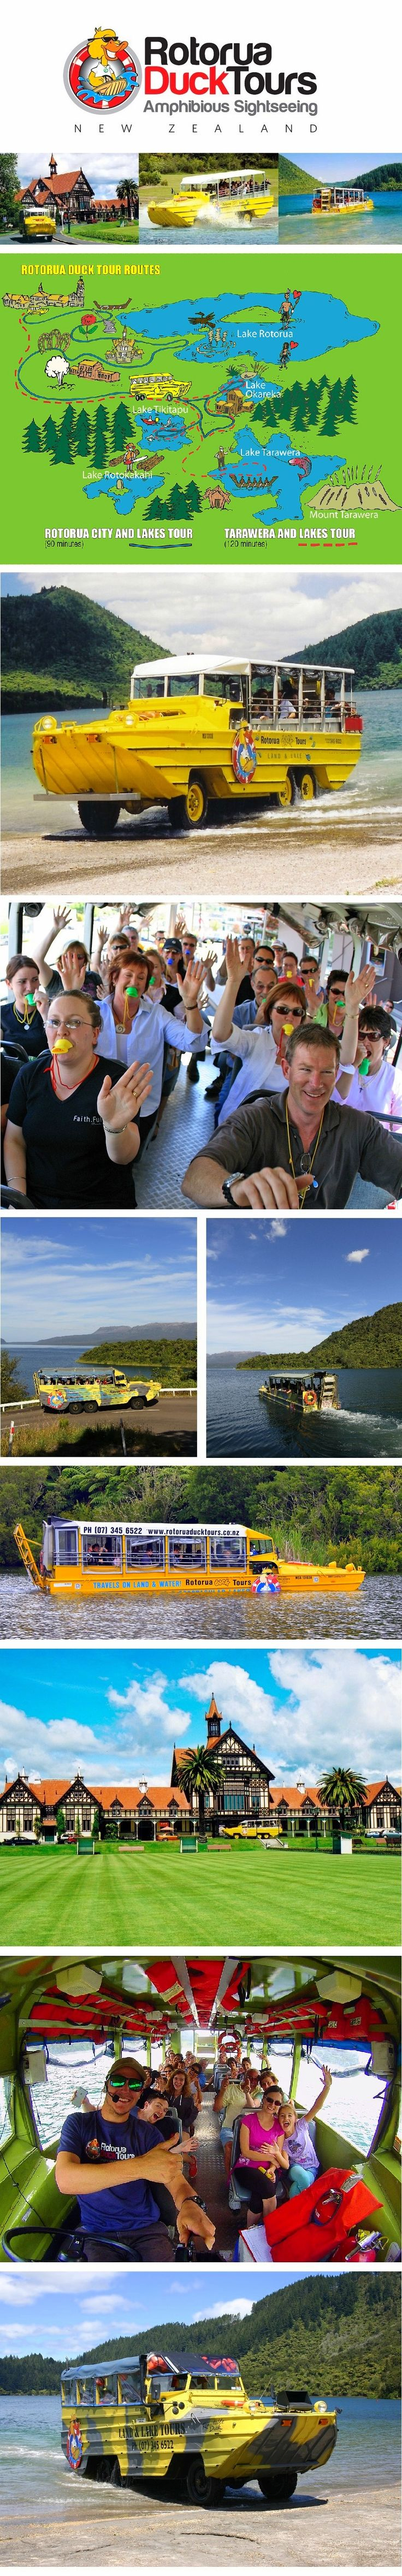 Rotorua Duck Tours - The unique 90 minute sightseeing adventure takes place on land and water, on-board our WWII amphibious Duck. Unlike any other tour in Rotorua, the duck tour is the best way to see the city and experience the beauty of the surrounding lake district all at once. Our Duck Tours begin right in the heart of the city where you will discover the sights and sounds, and learn all about the rich history and diversity that makes Rotorua such a unique destination.